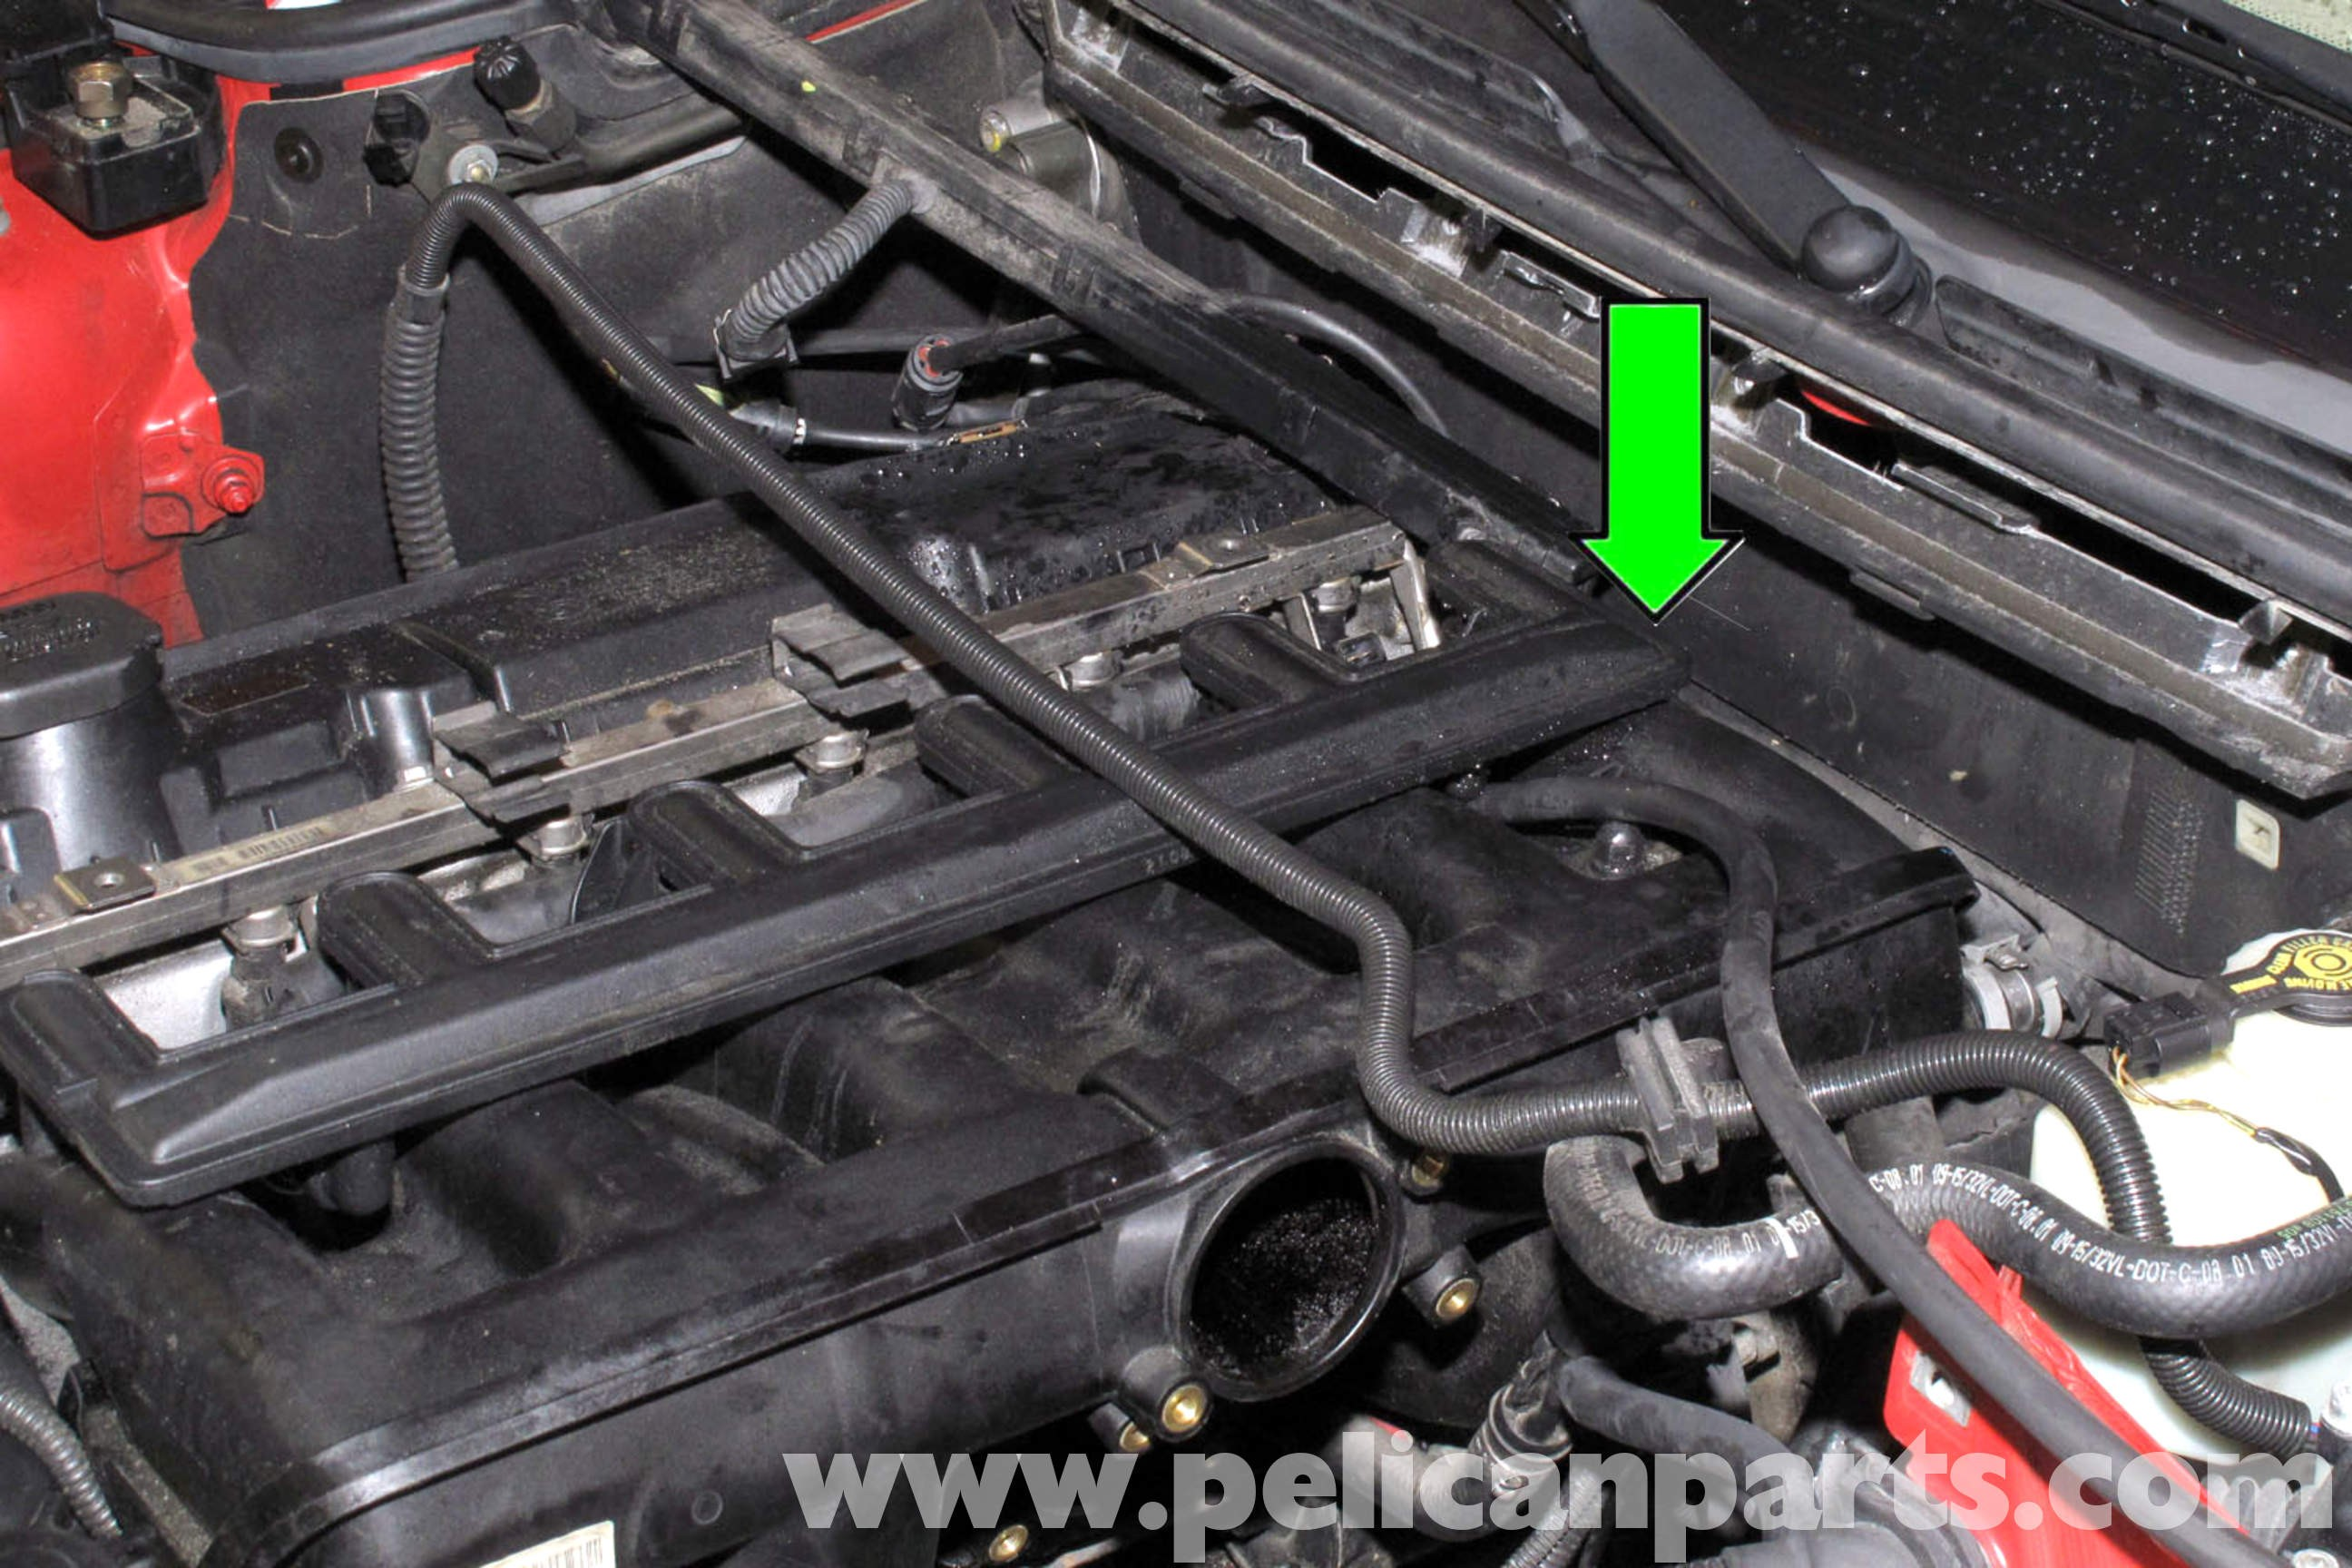 2000 Bmw 328i Engine Diagram Bmw E46 Fuel Injector Replacement Of 2000 Bmw 328i Engine Diagram